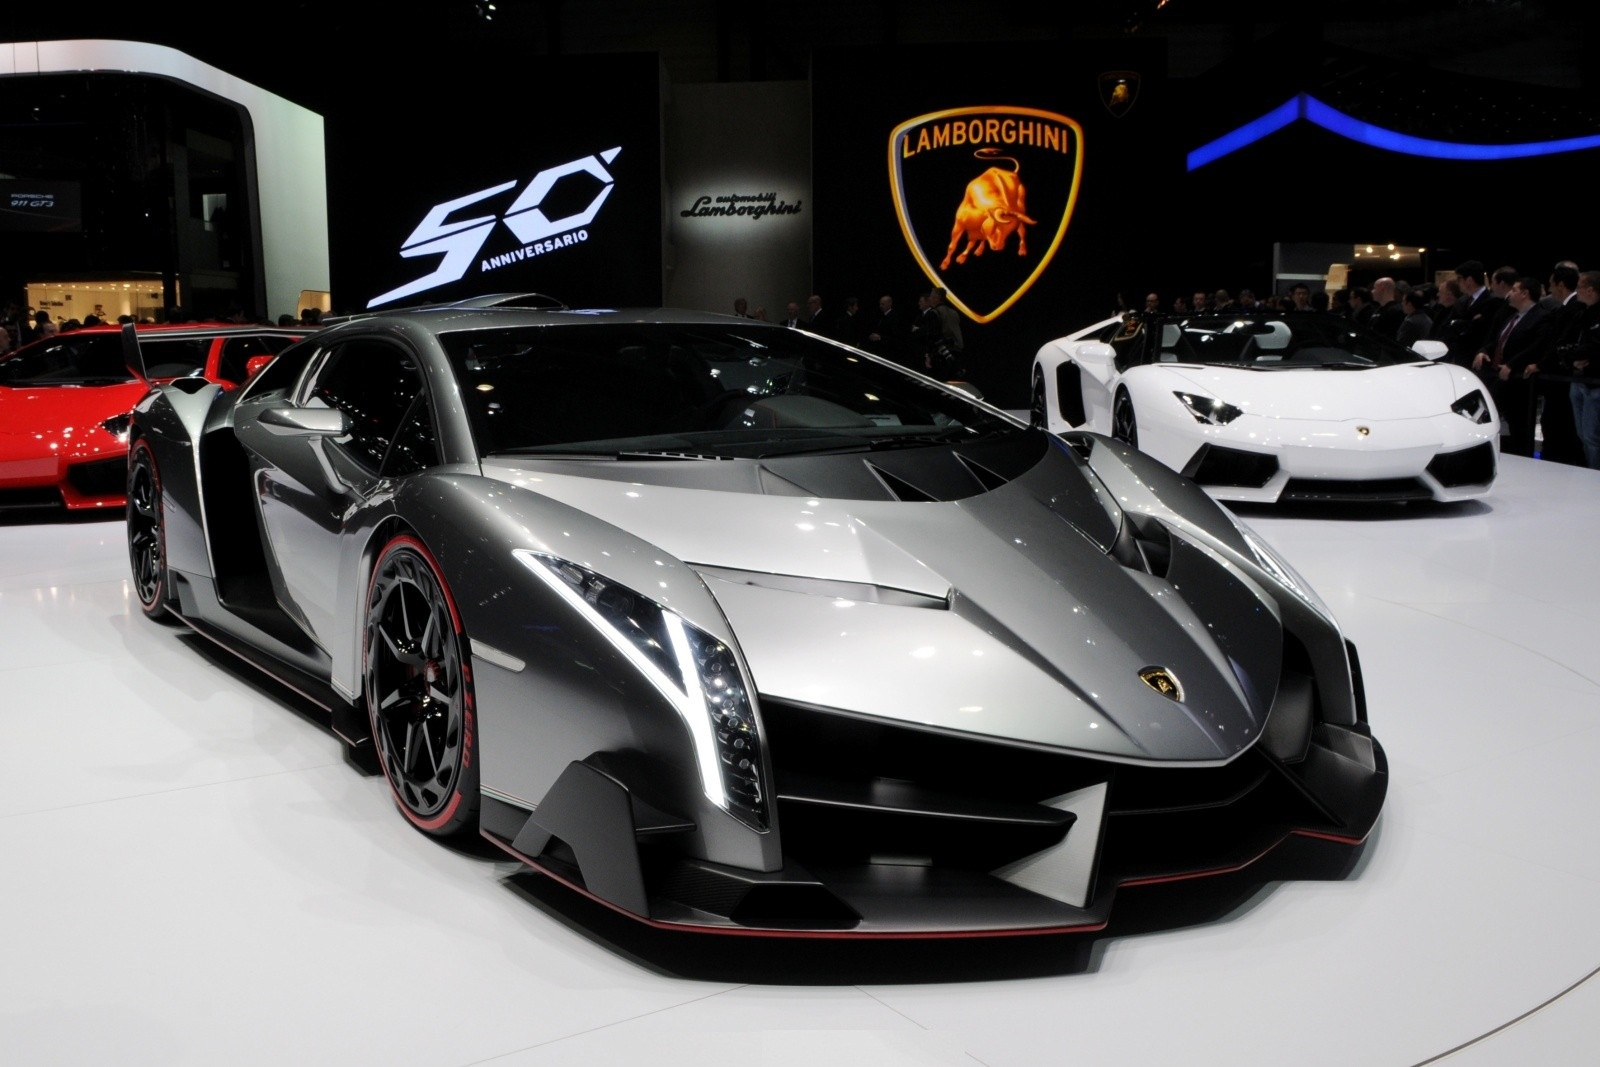 3d Wallpapers Lamborghini Wallpapers: Lamborghini HD Wallpapers 1080p